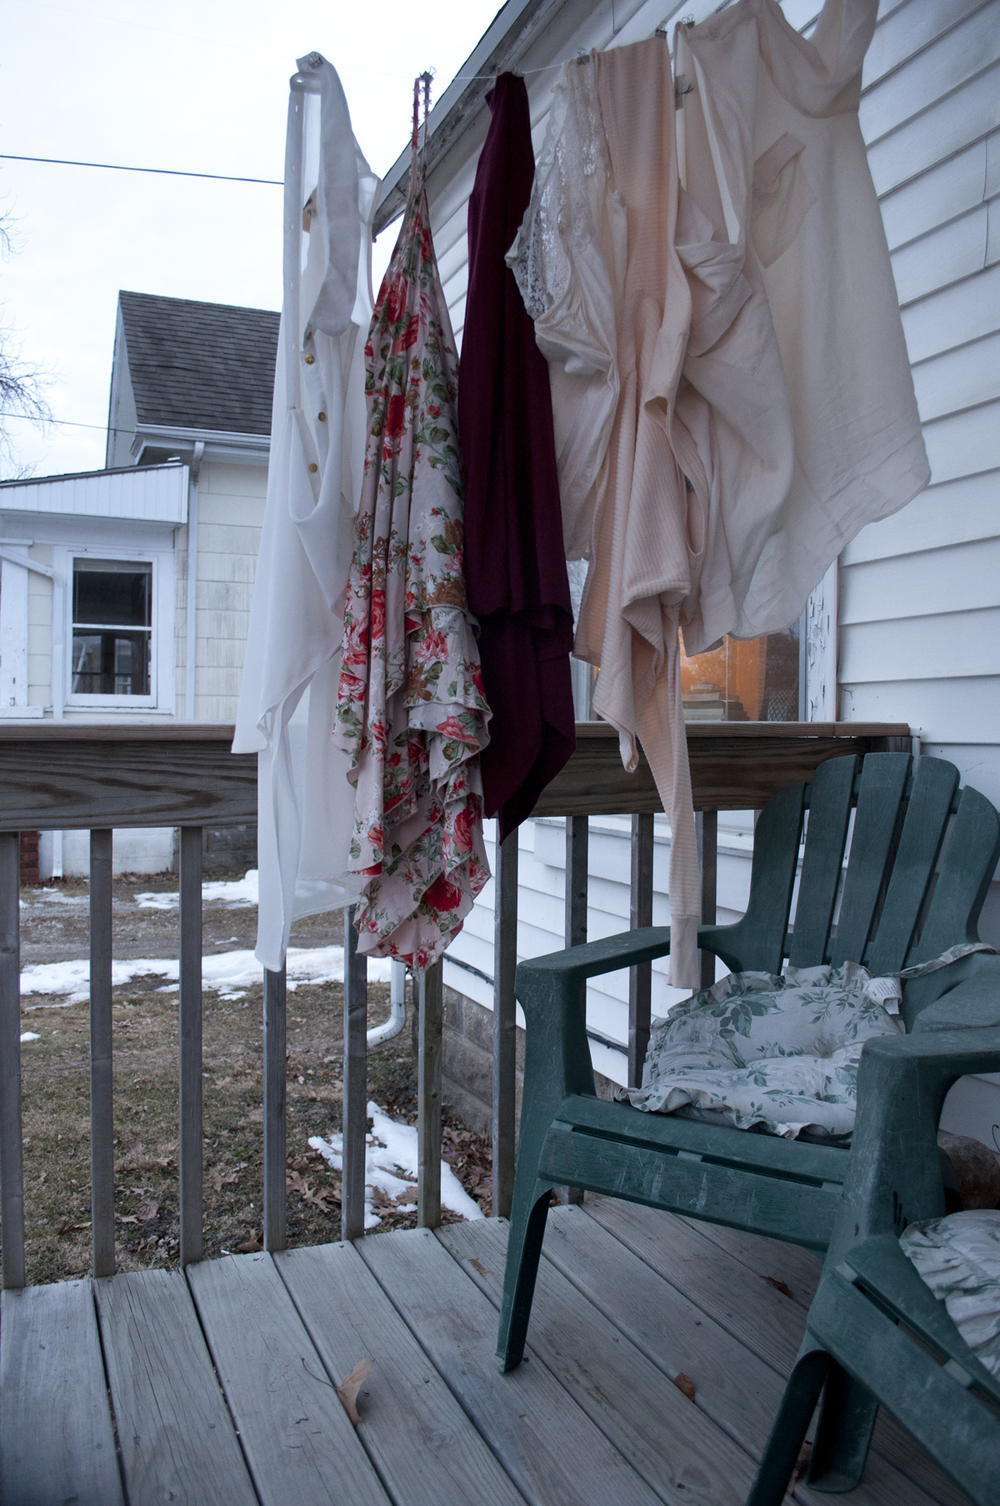 porch_clothesline_small.jpg